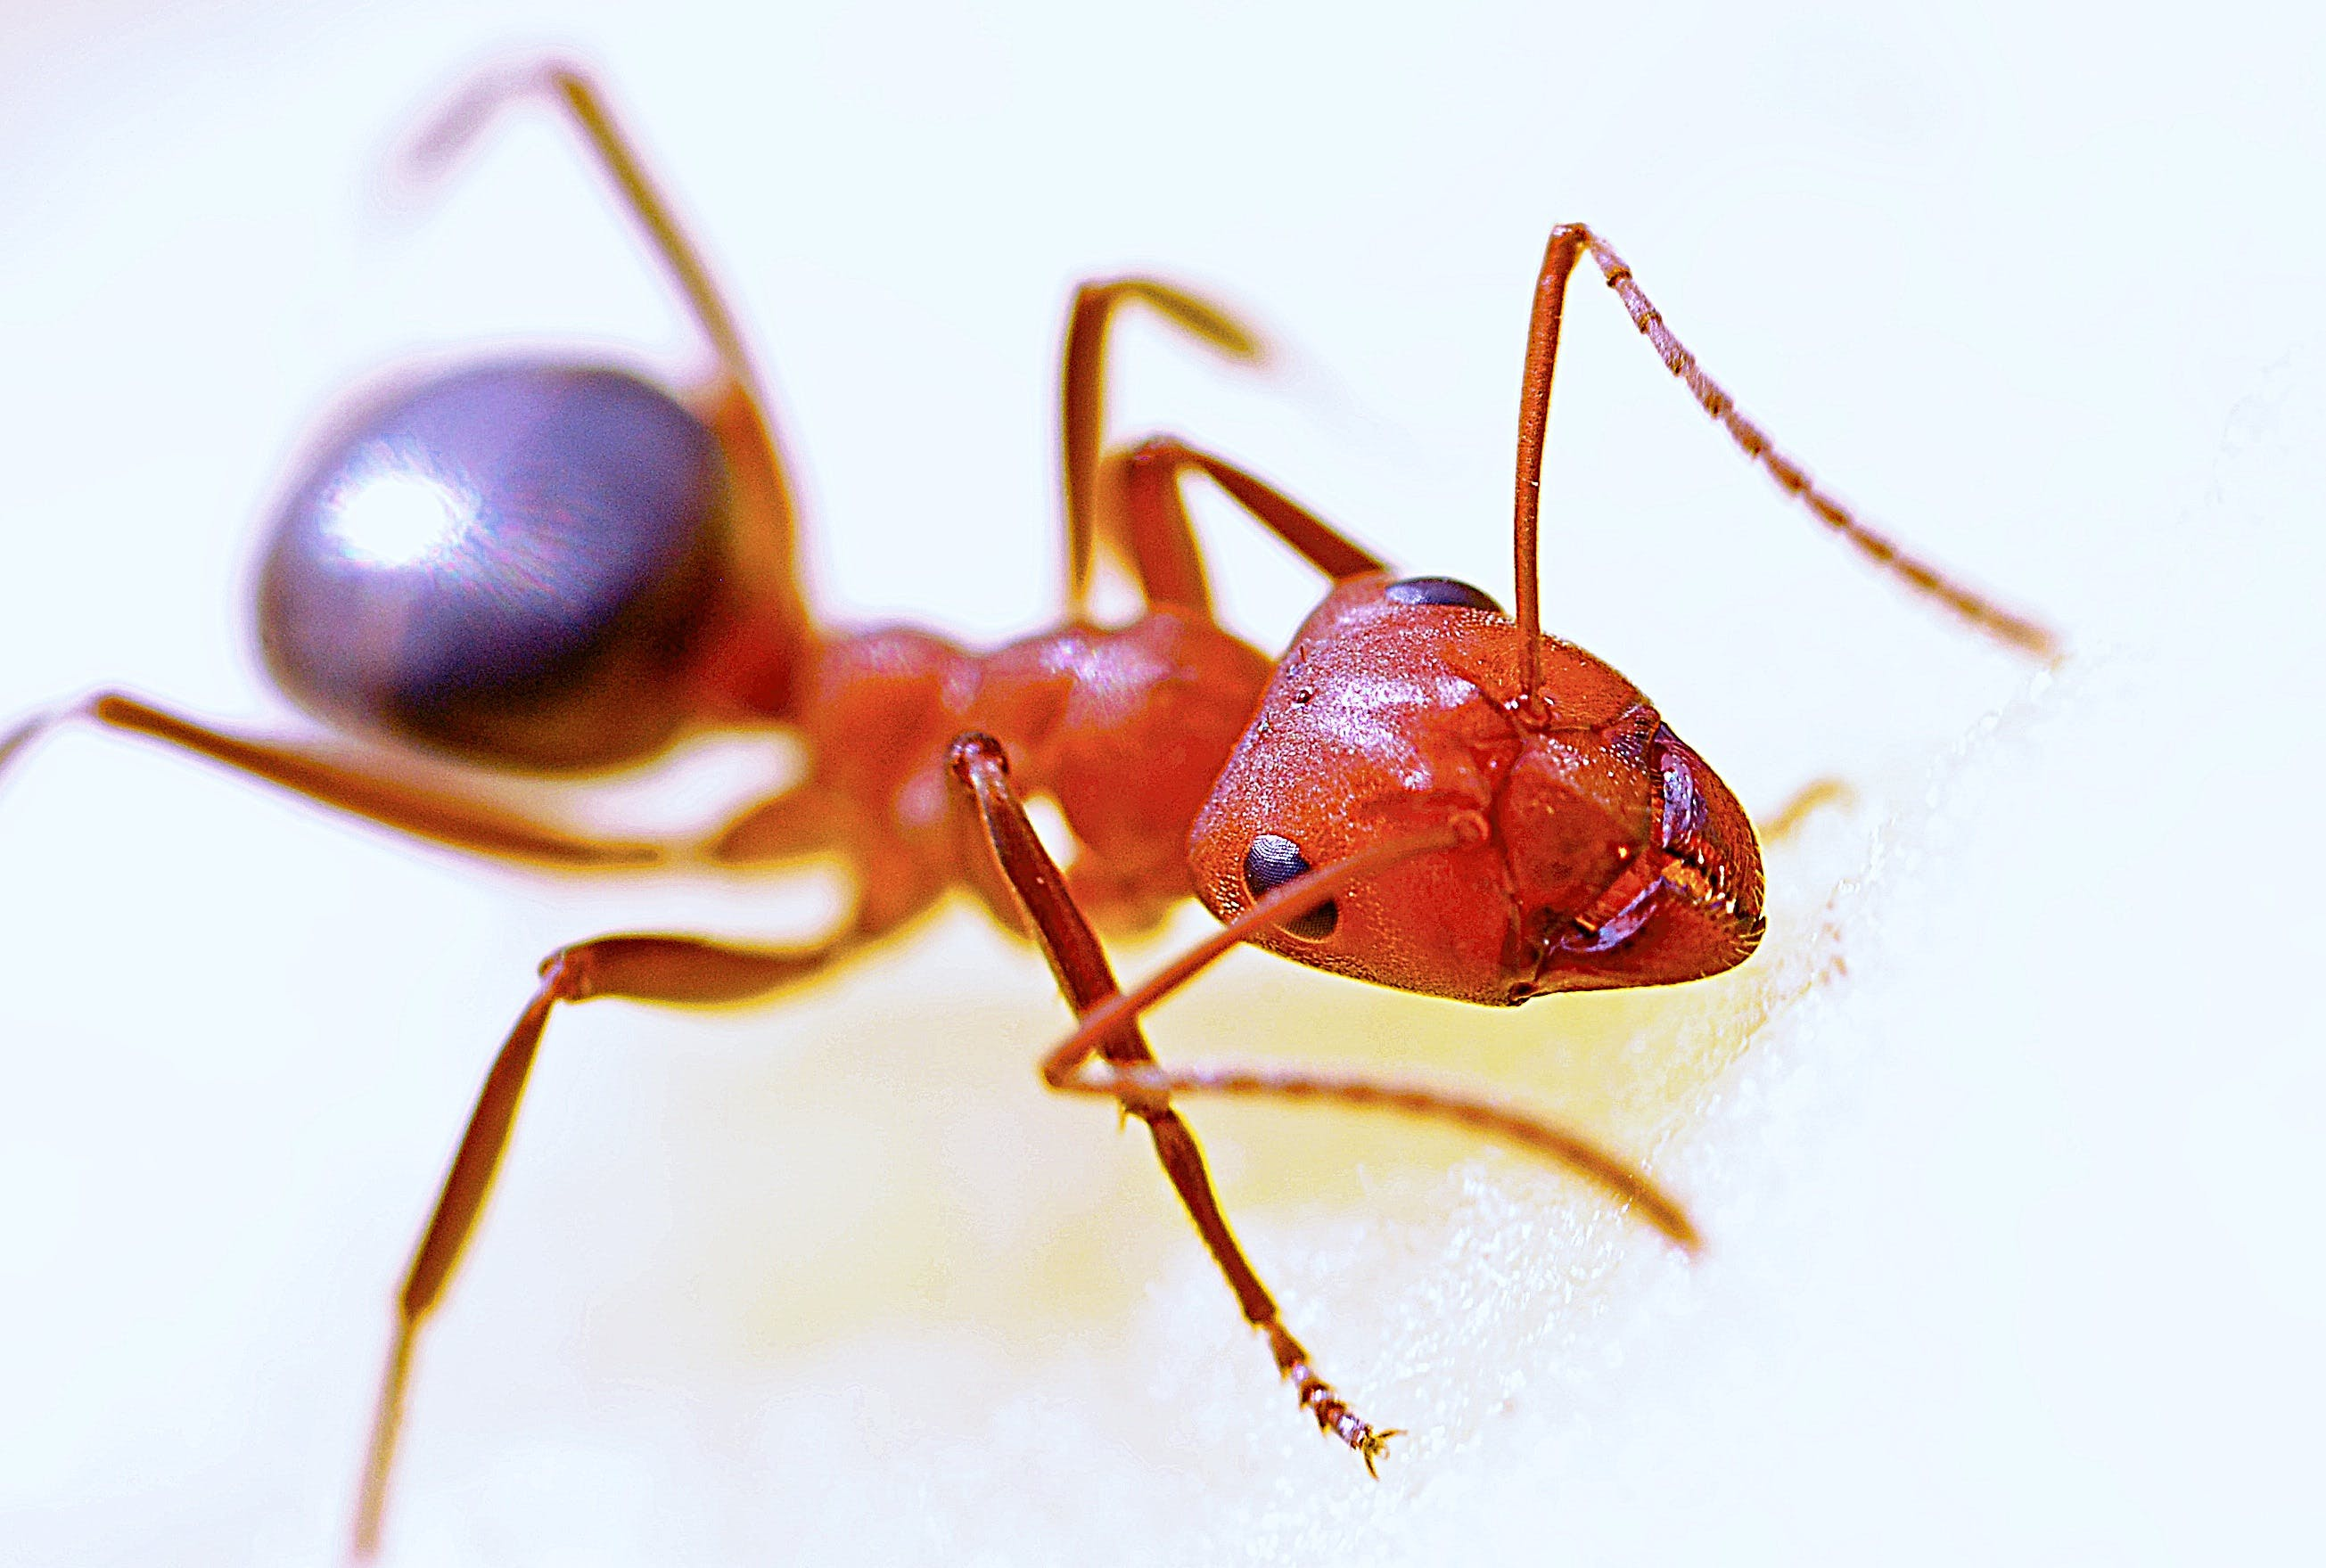 Red Fire Ant in Close-up Photography